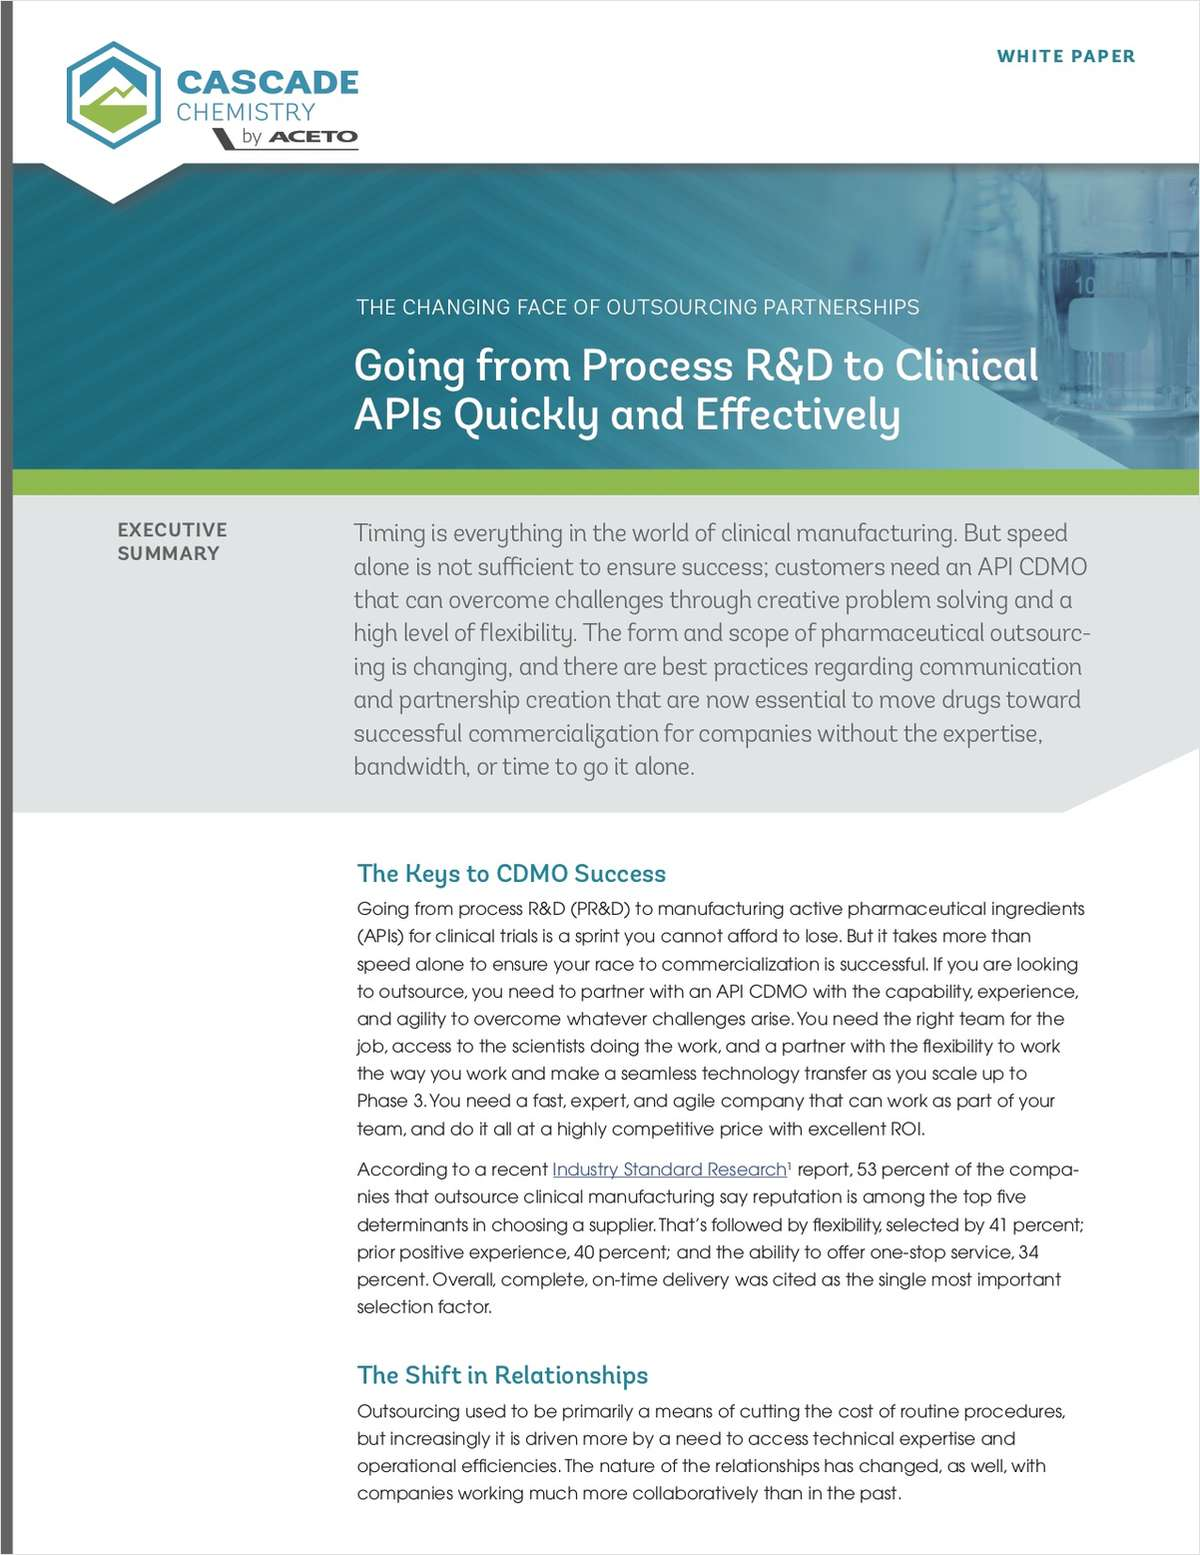 The Changing Face of Outsourcing Partnerships - Going from Process R&D to Clinical APIs Quickly and Effectively